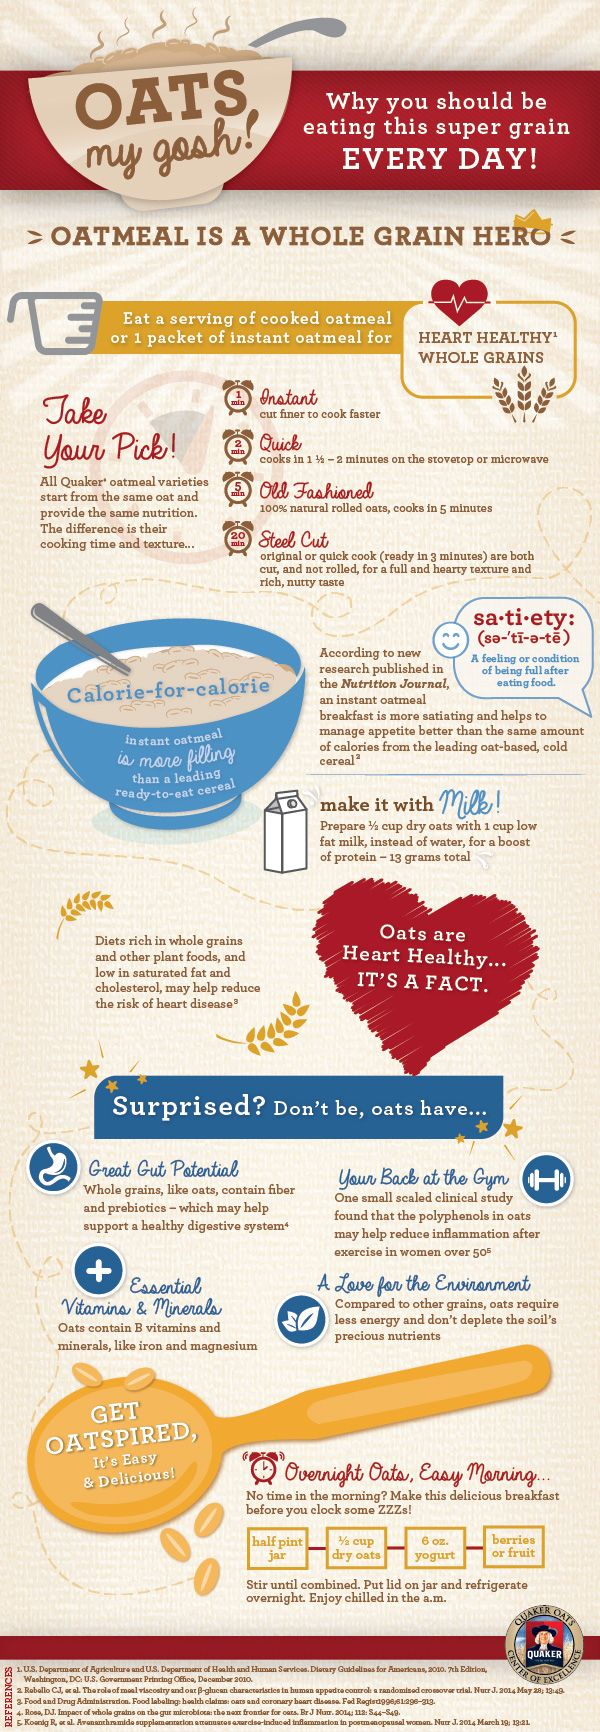 Hey, Oatmeal Lovers!  Here are lots of reasons to feel good about the health benefits of your favorite breakfast!